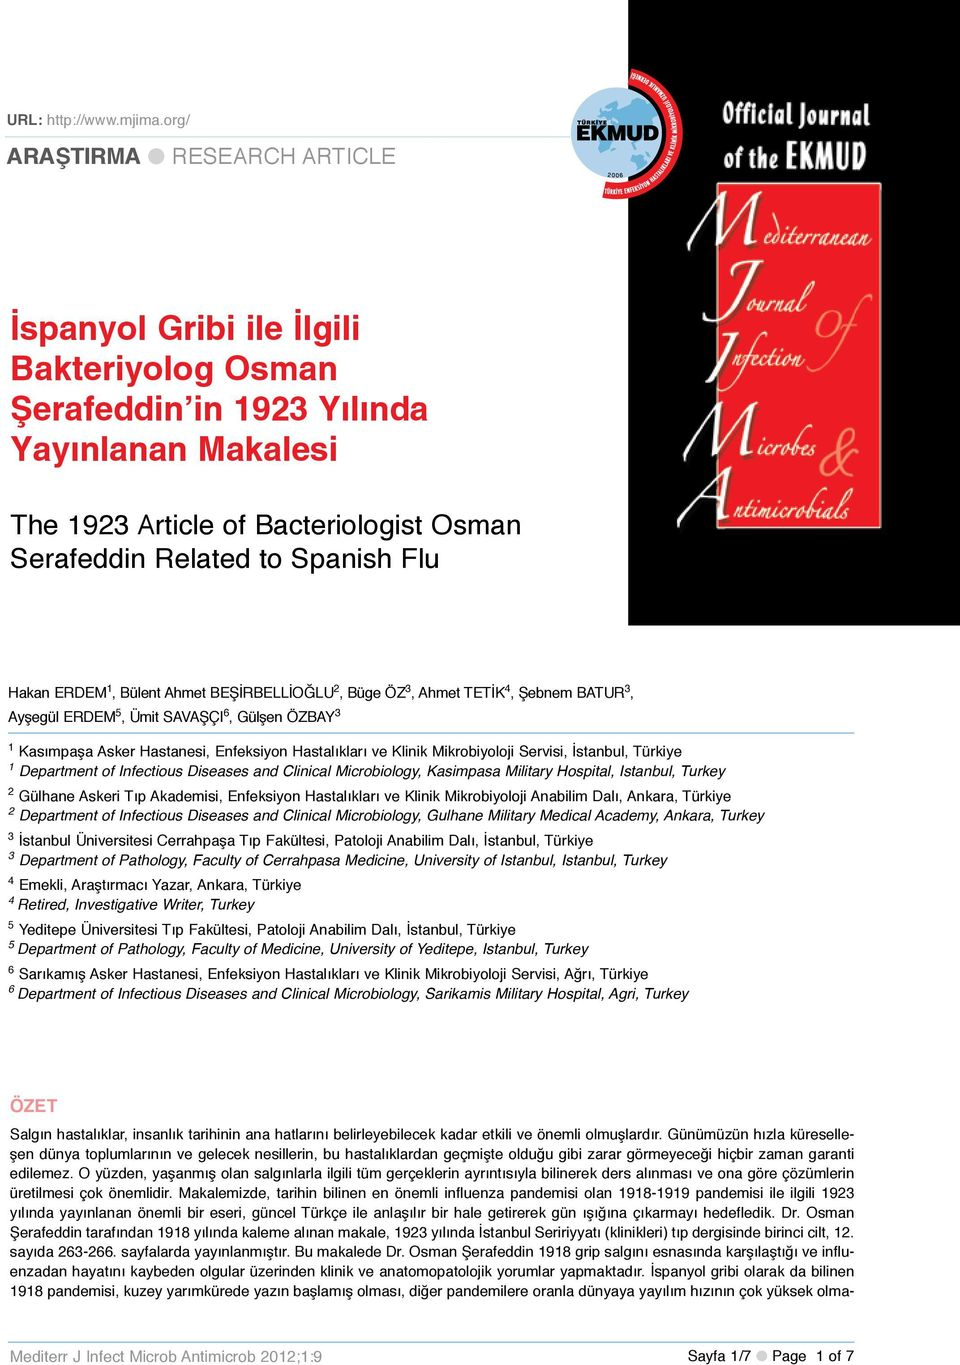 org/ ARAŞTIRMA l RESEARCH ARTICLE İspanyol Gribi ile İlgili Bakteriyolog Osman Şerafeddin in 1923 Yılında Yayınlanan Makalesi The 1923 Article of Bacteriologist Osman Serafeddin Related to Spanish